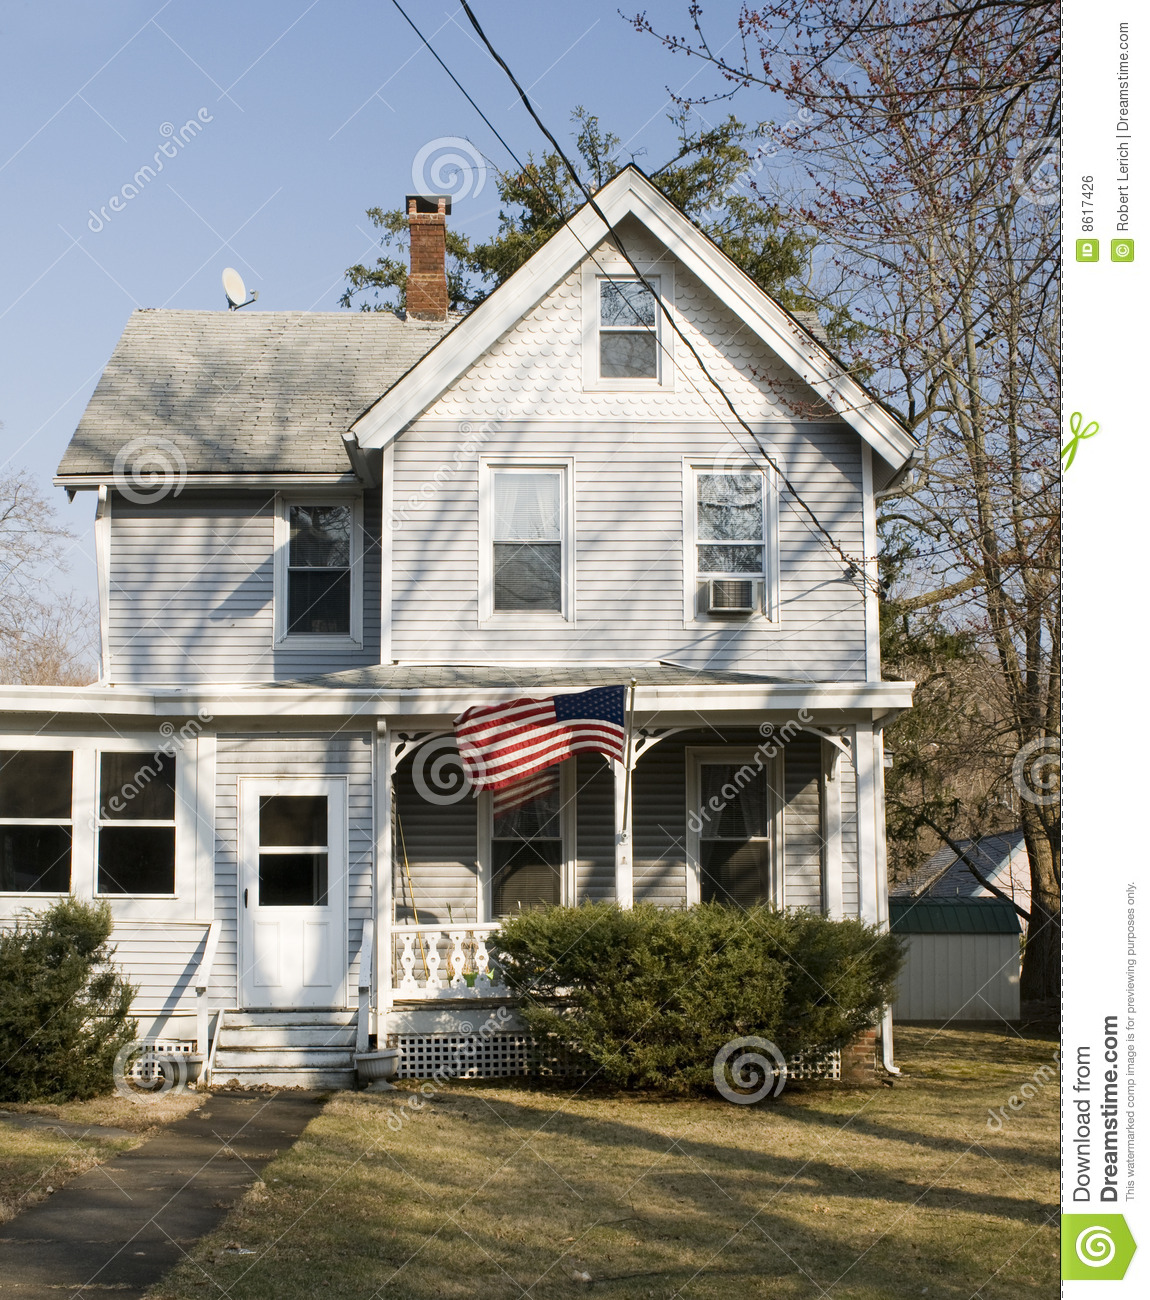 Sloatsburg rural new york da casa foto de stock imagem for Casas en nueva york